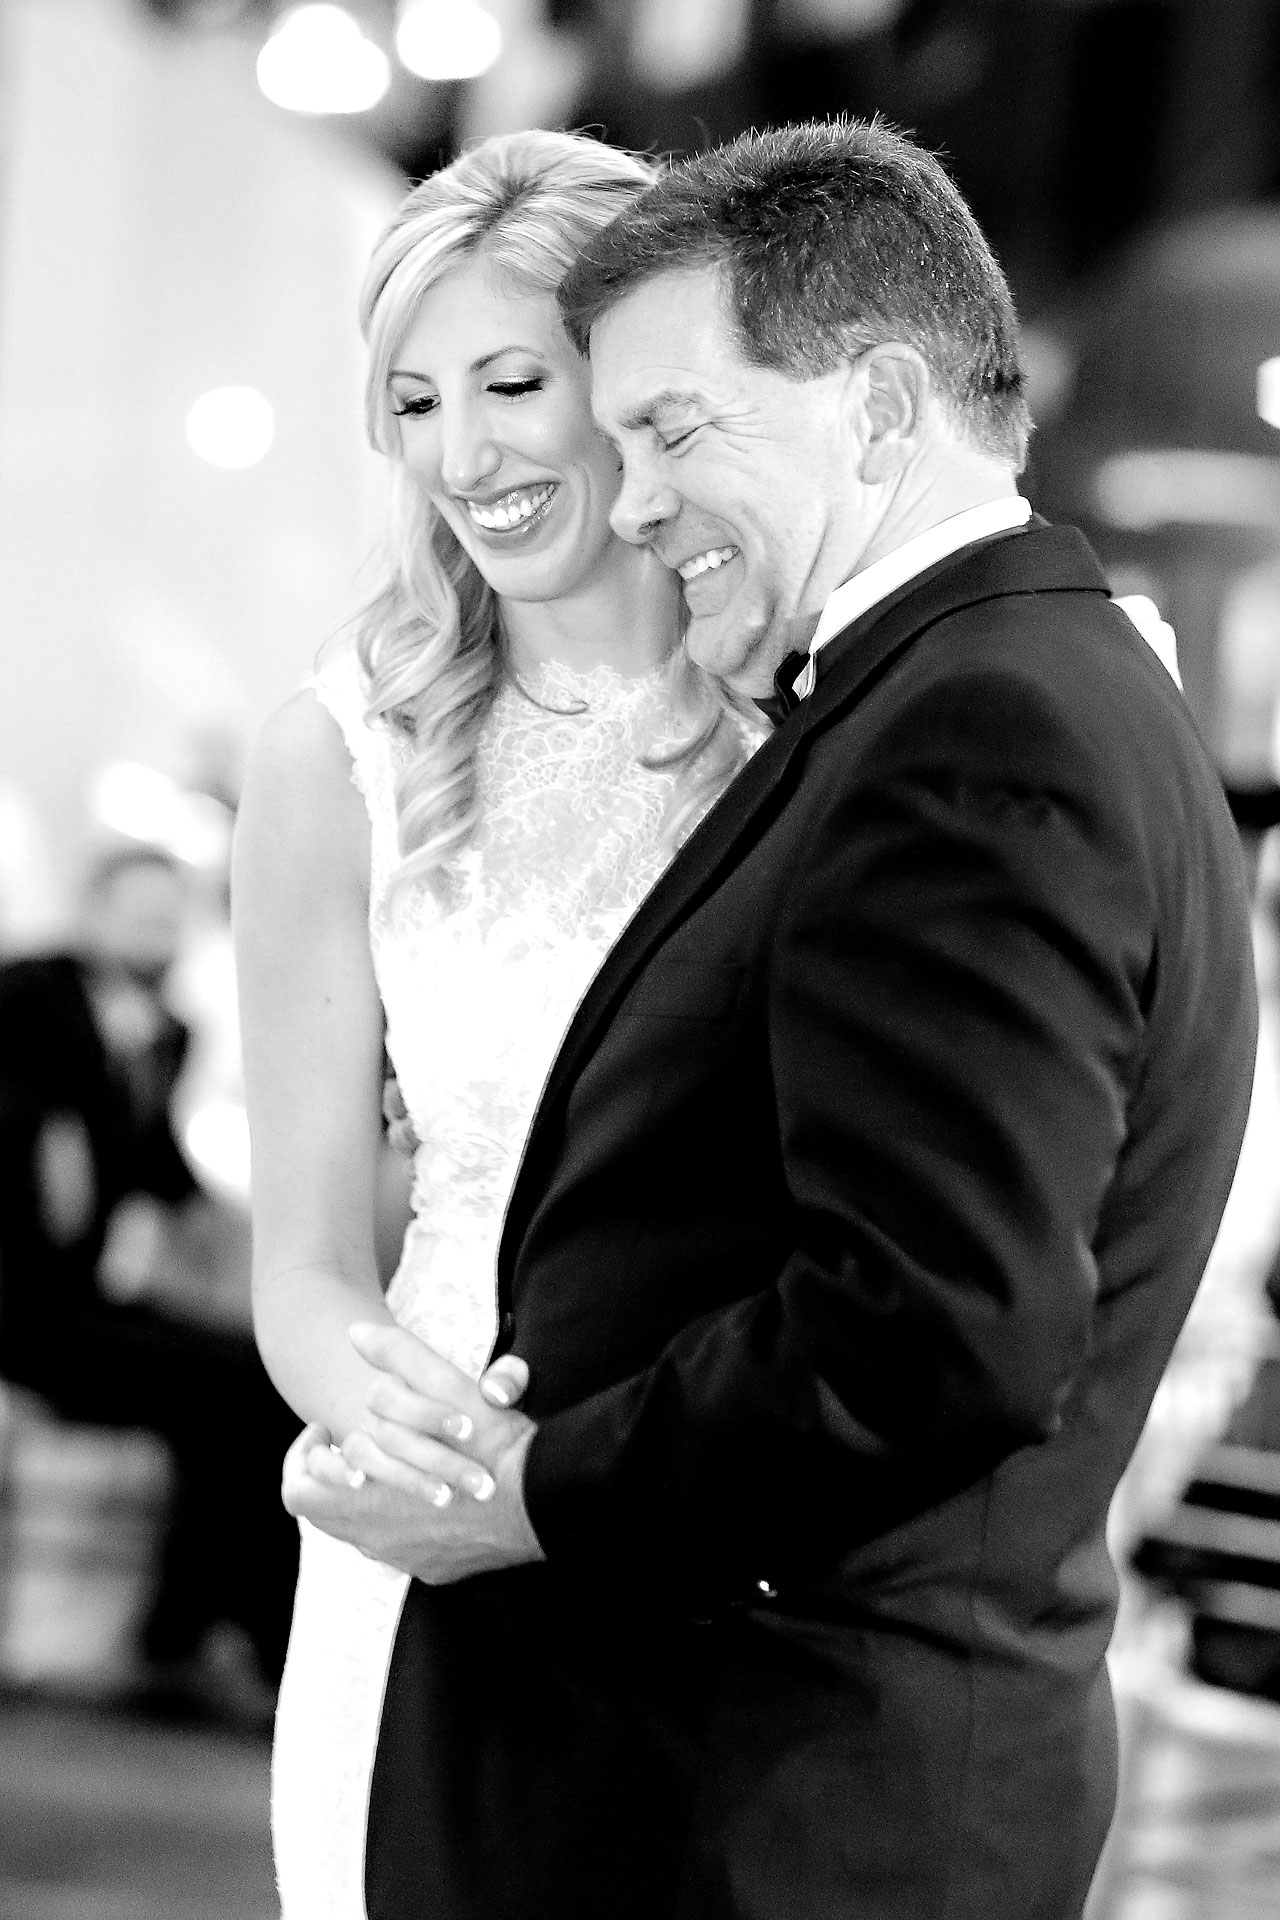 abby nick indianapolis central library wedding 302